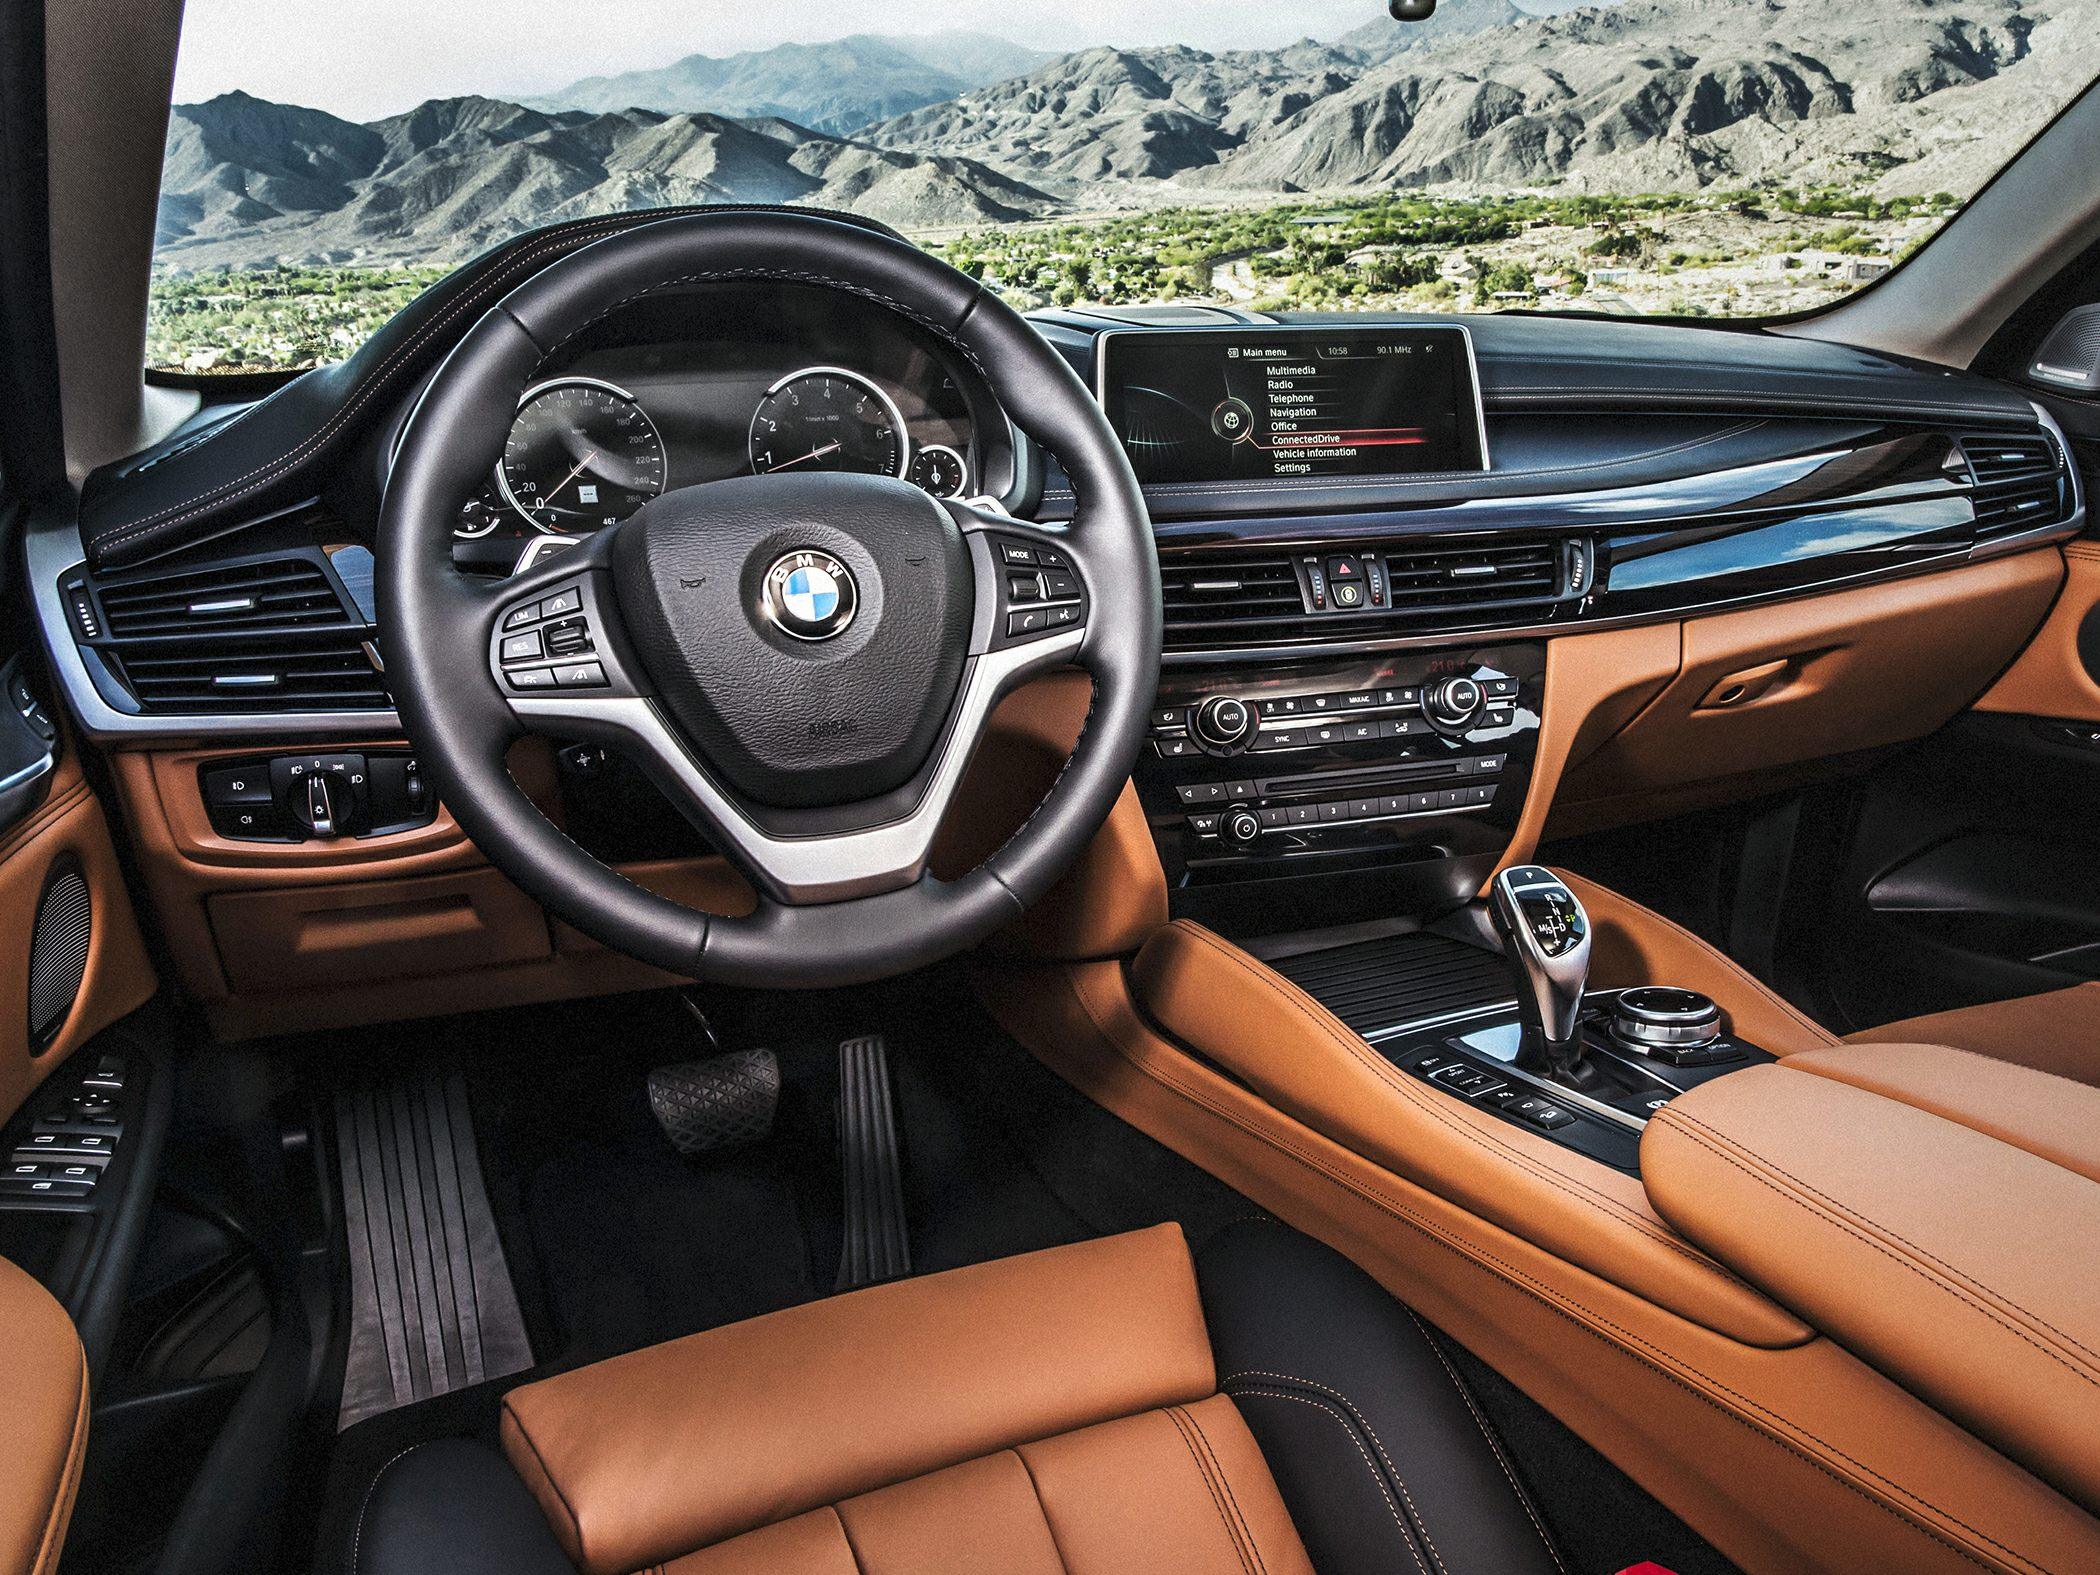 Worksheet. 2017 BMW X6 Deals Prices Incentives  Leases Overview  CarsDirect